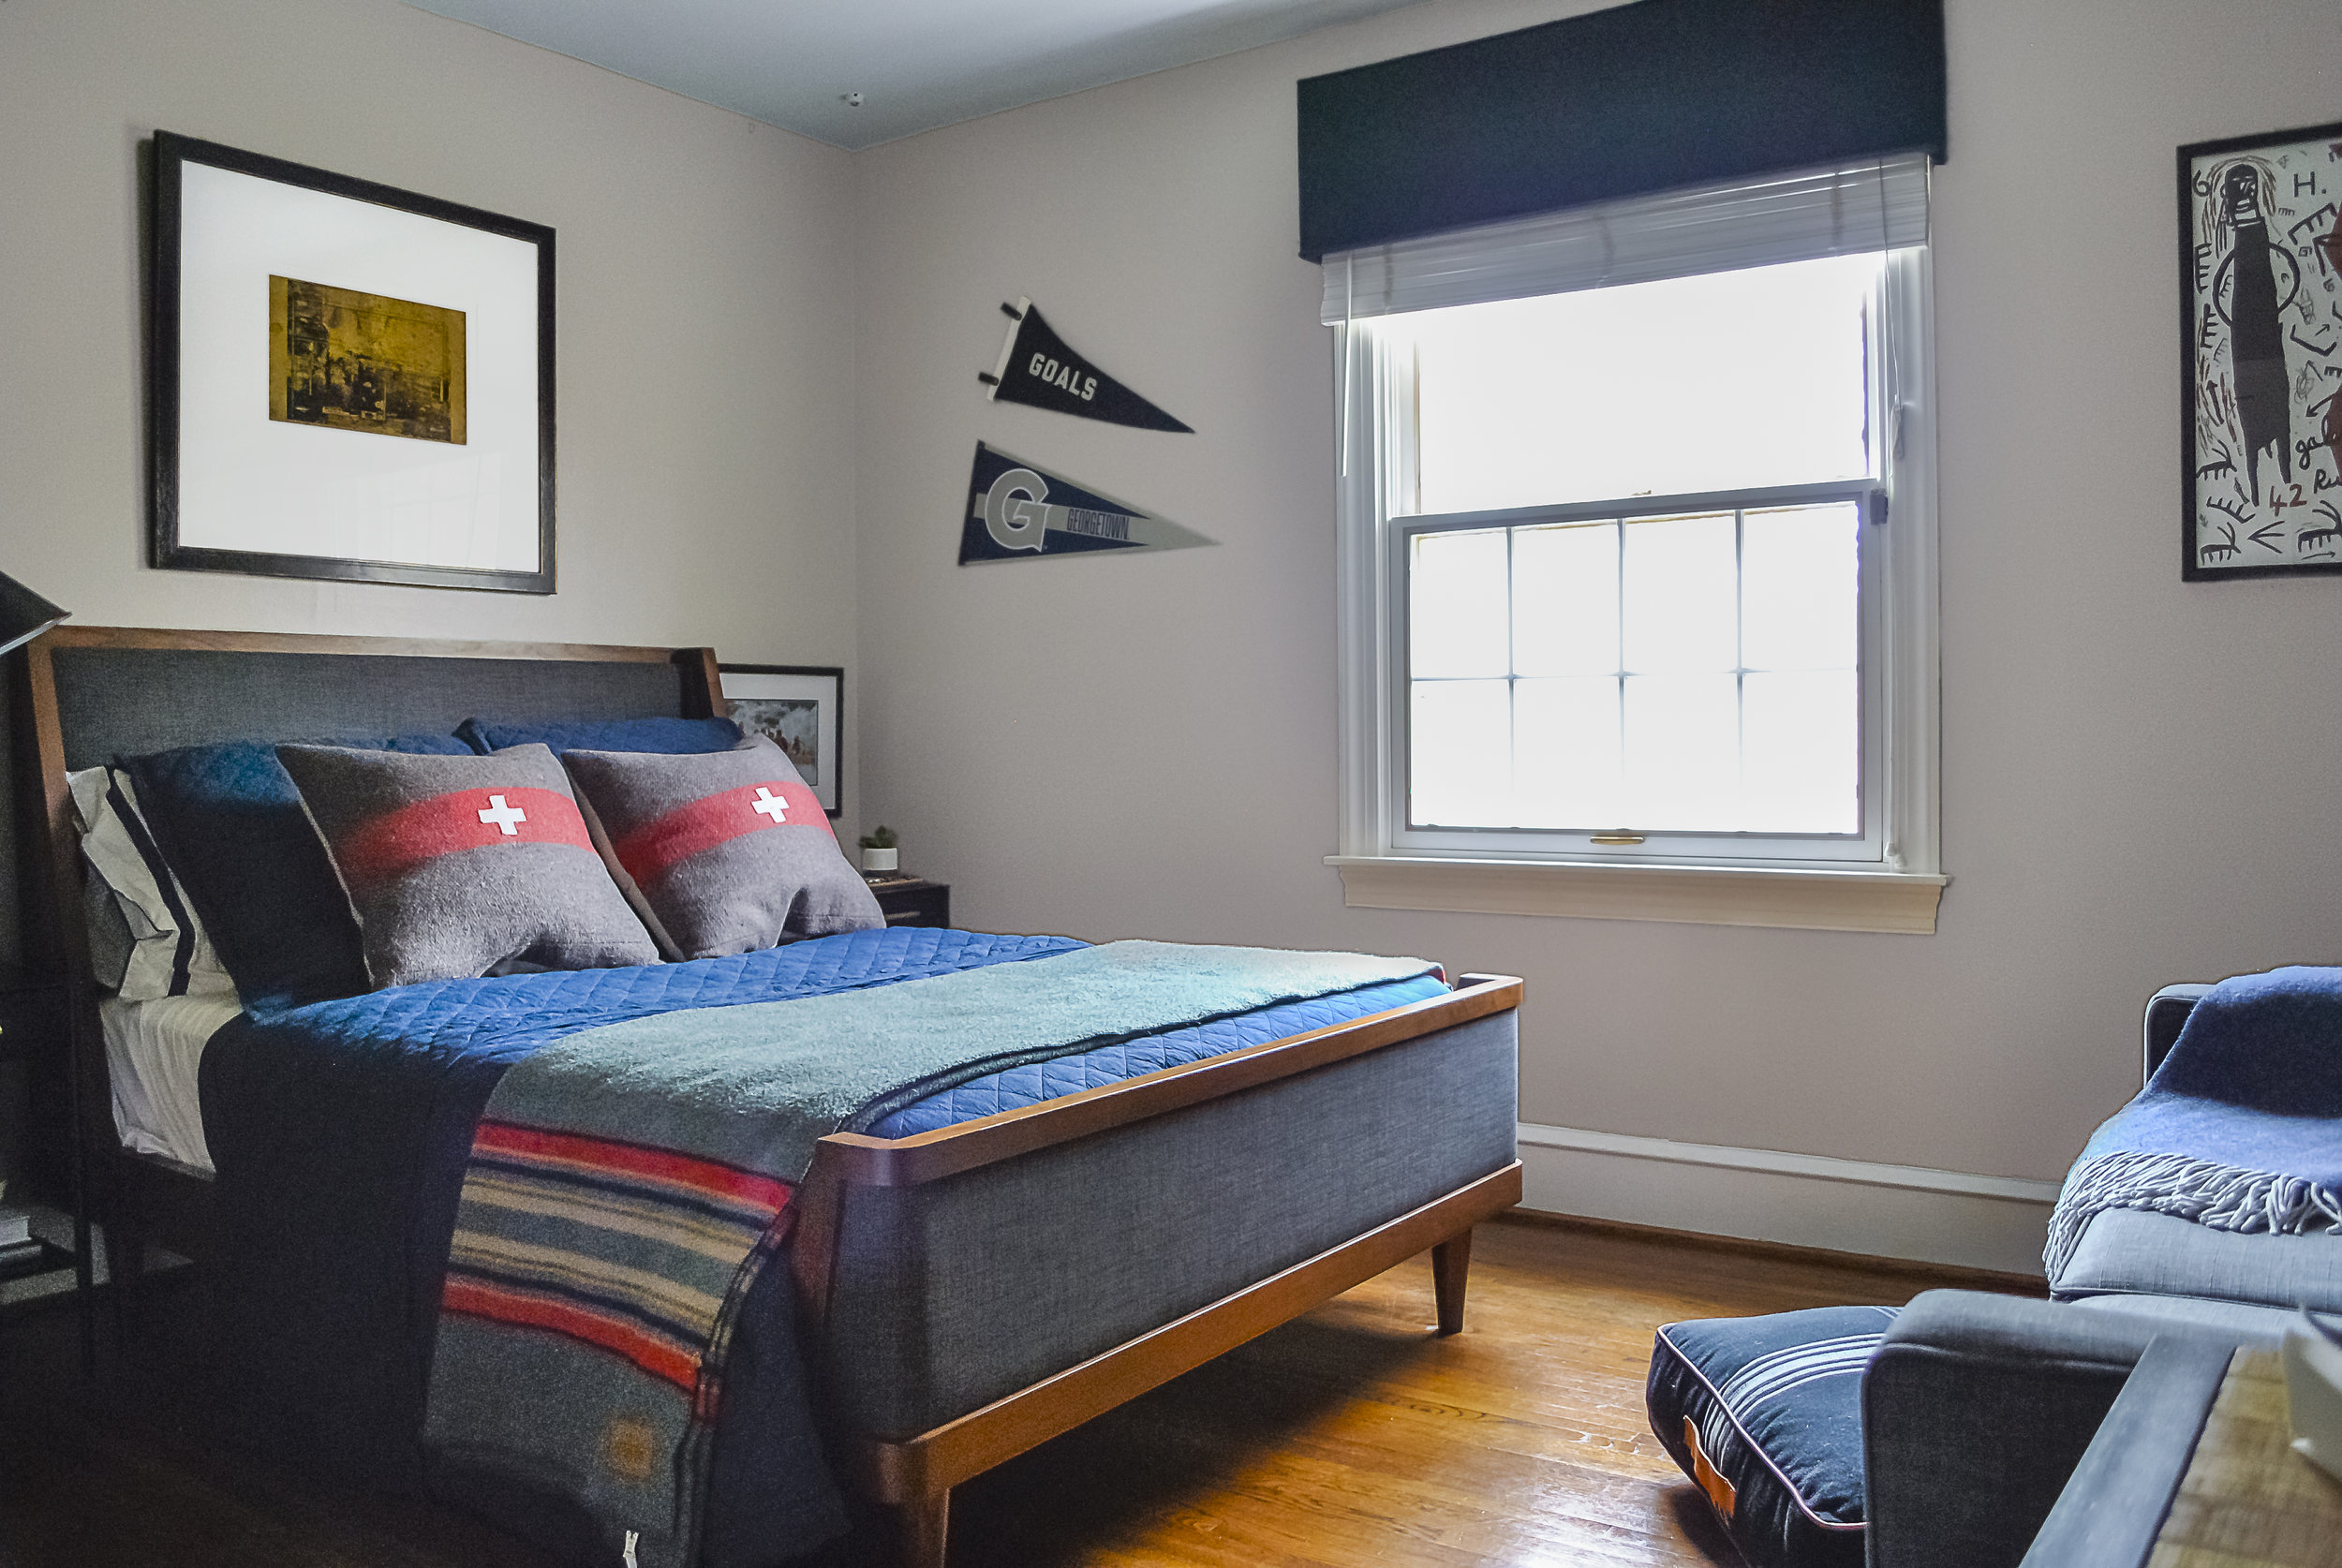 This teenage boys bedroom blends a classic vintage feel with a nod to the outdoors. Designed by Sharp + Grey Interiors